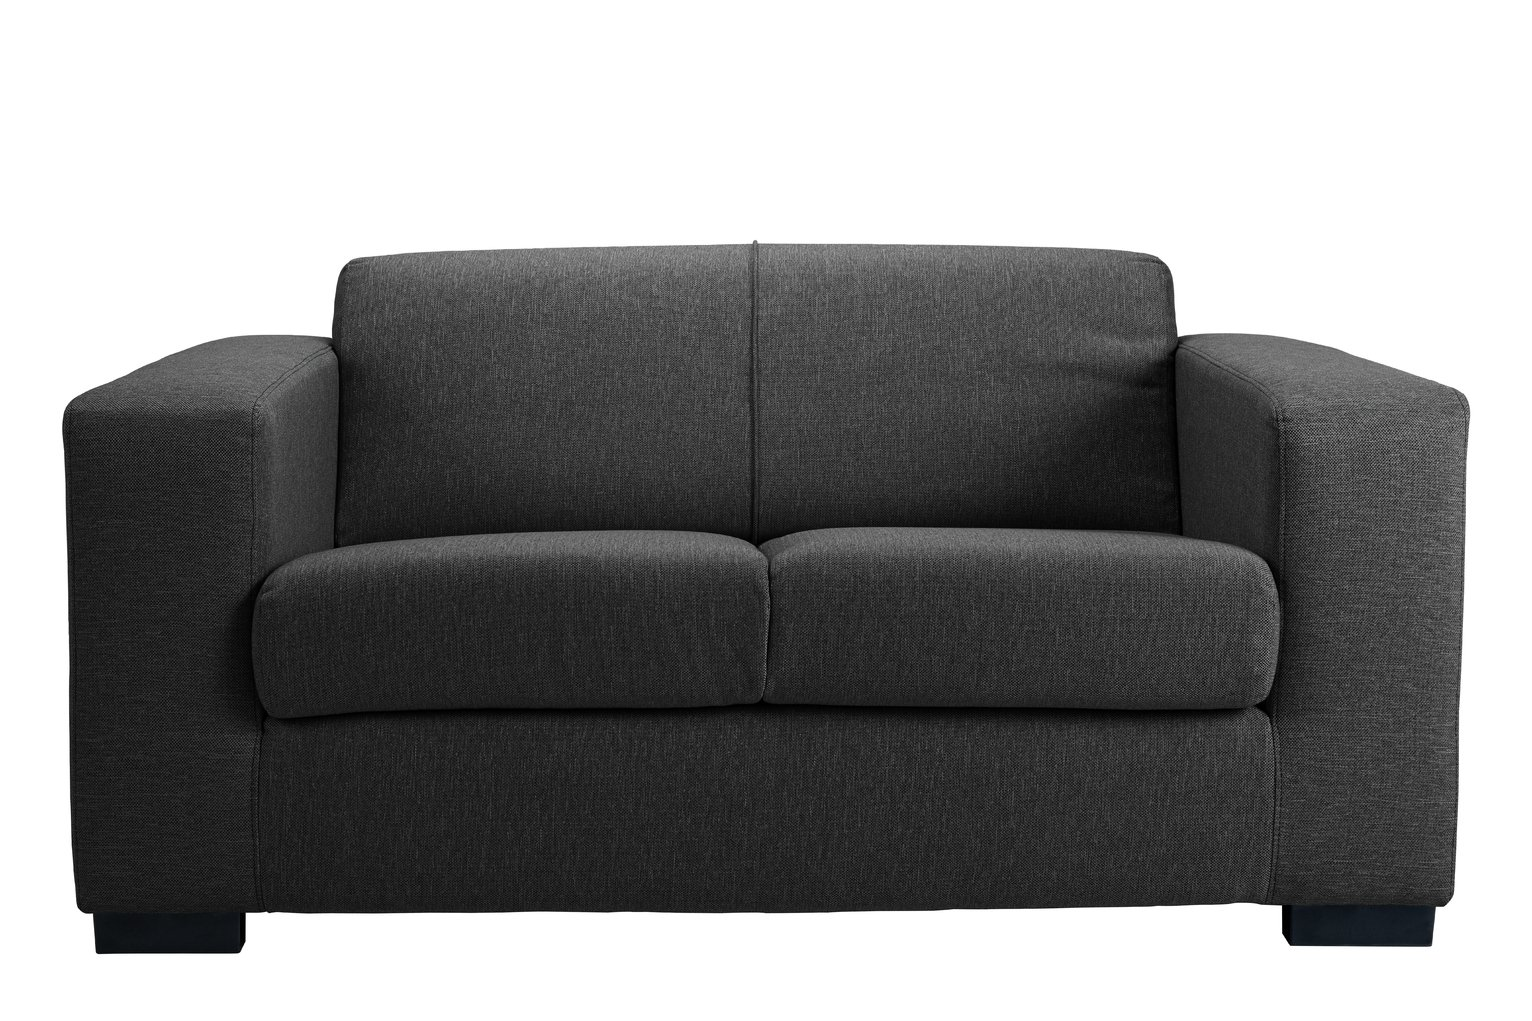 Argos Home New Ava Compact 2 Seater Fabric Sofa - Charcoal